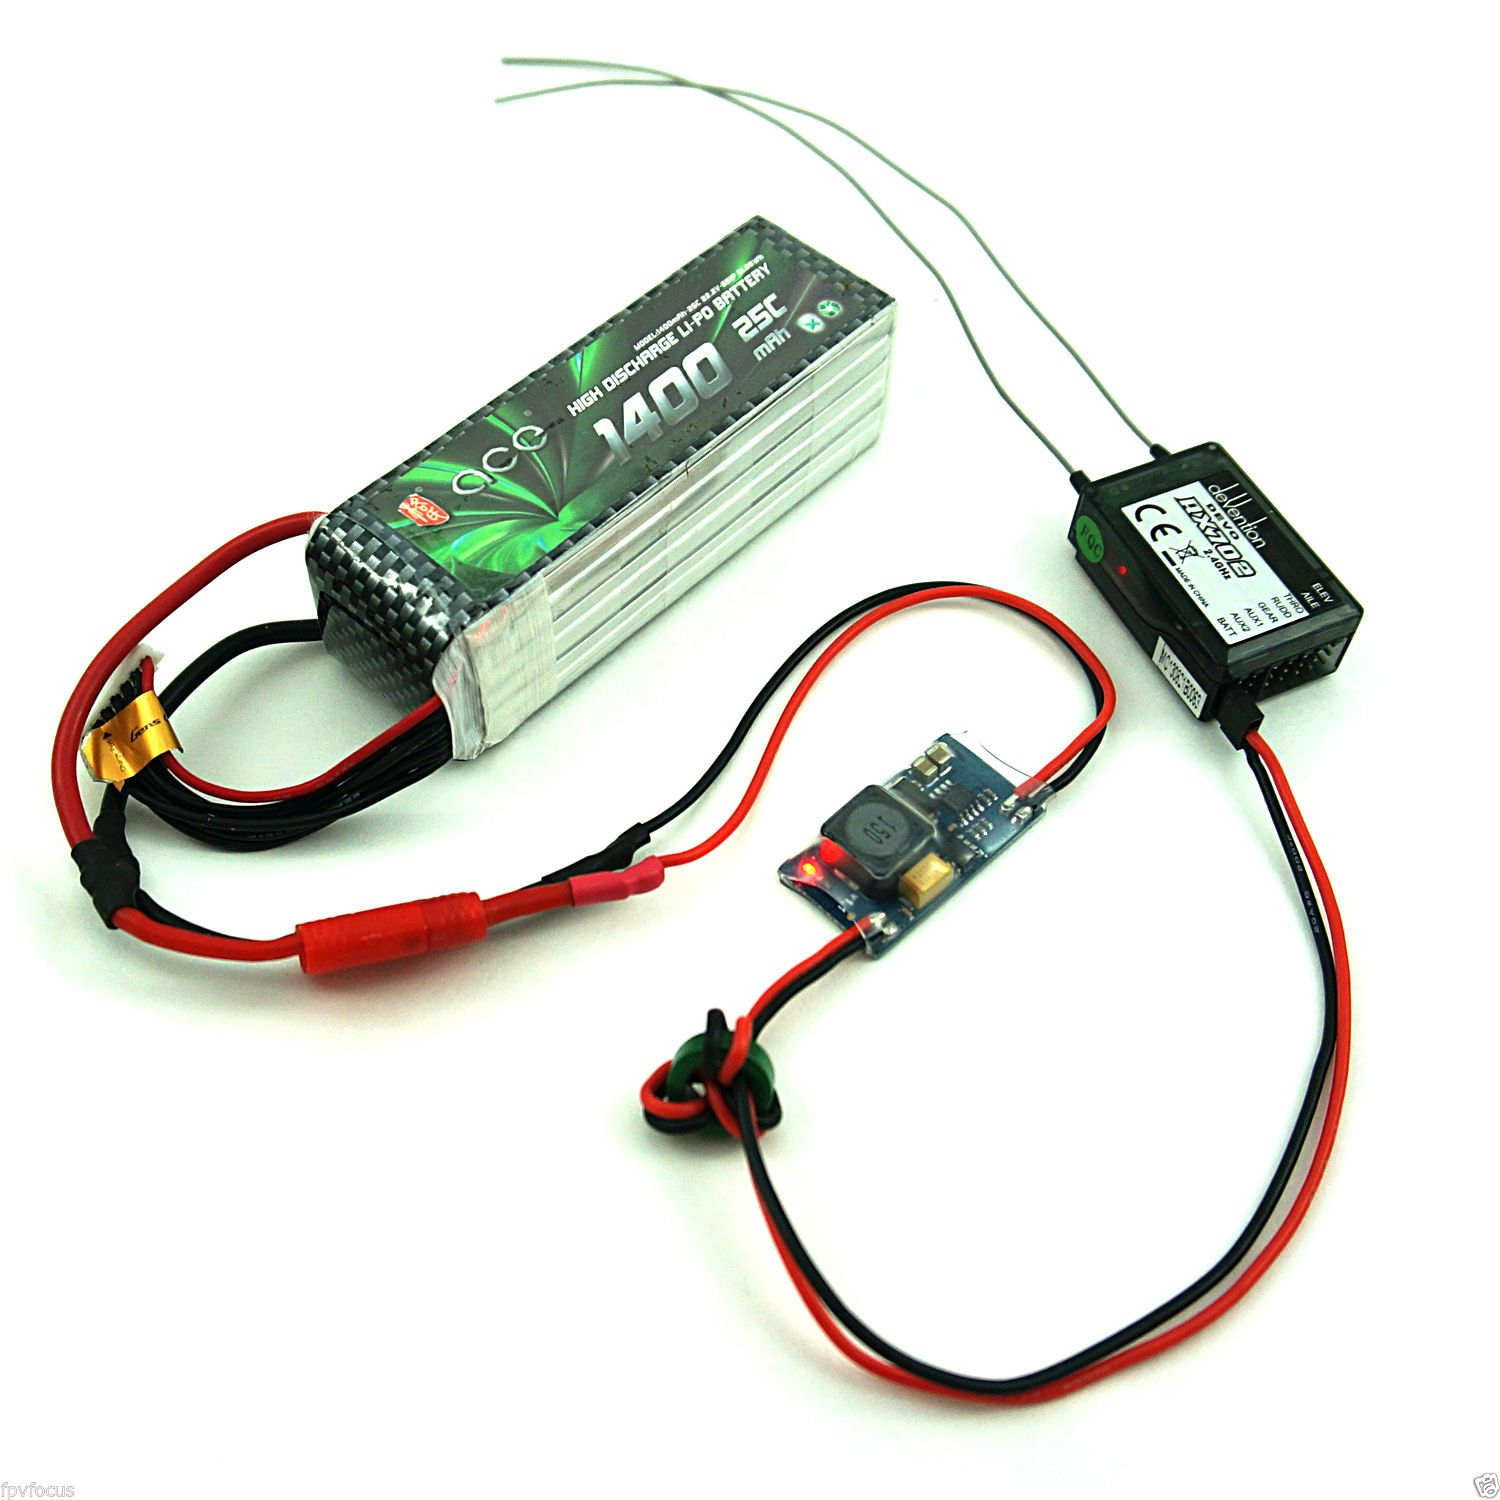 fpv focus bec sbec ubec 5v/5 volt 2s-8s switching regulator - 4s/6s lipo  #fpv #bec #equipment #systems #ubec #sbec #lipo